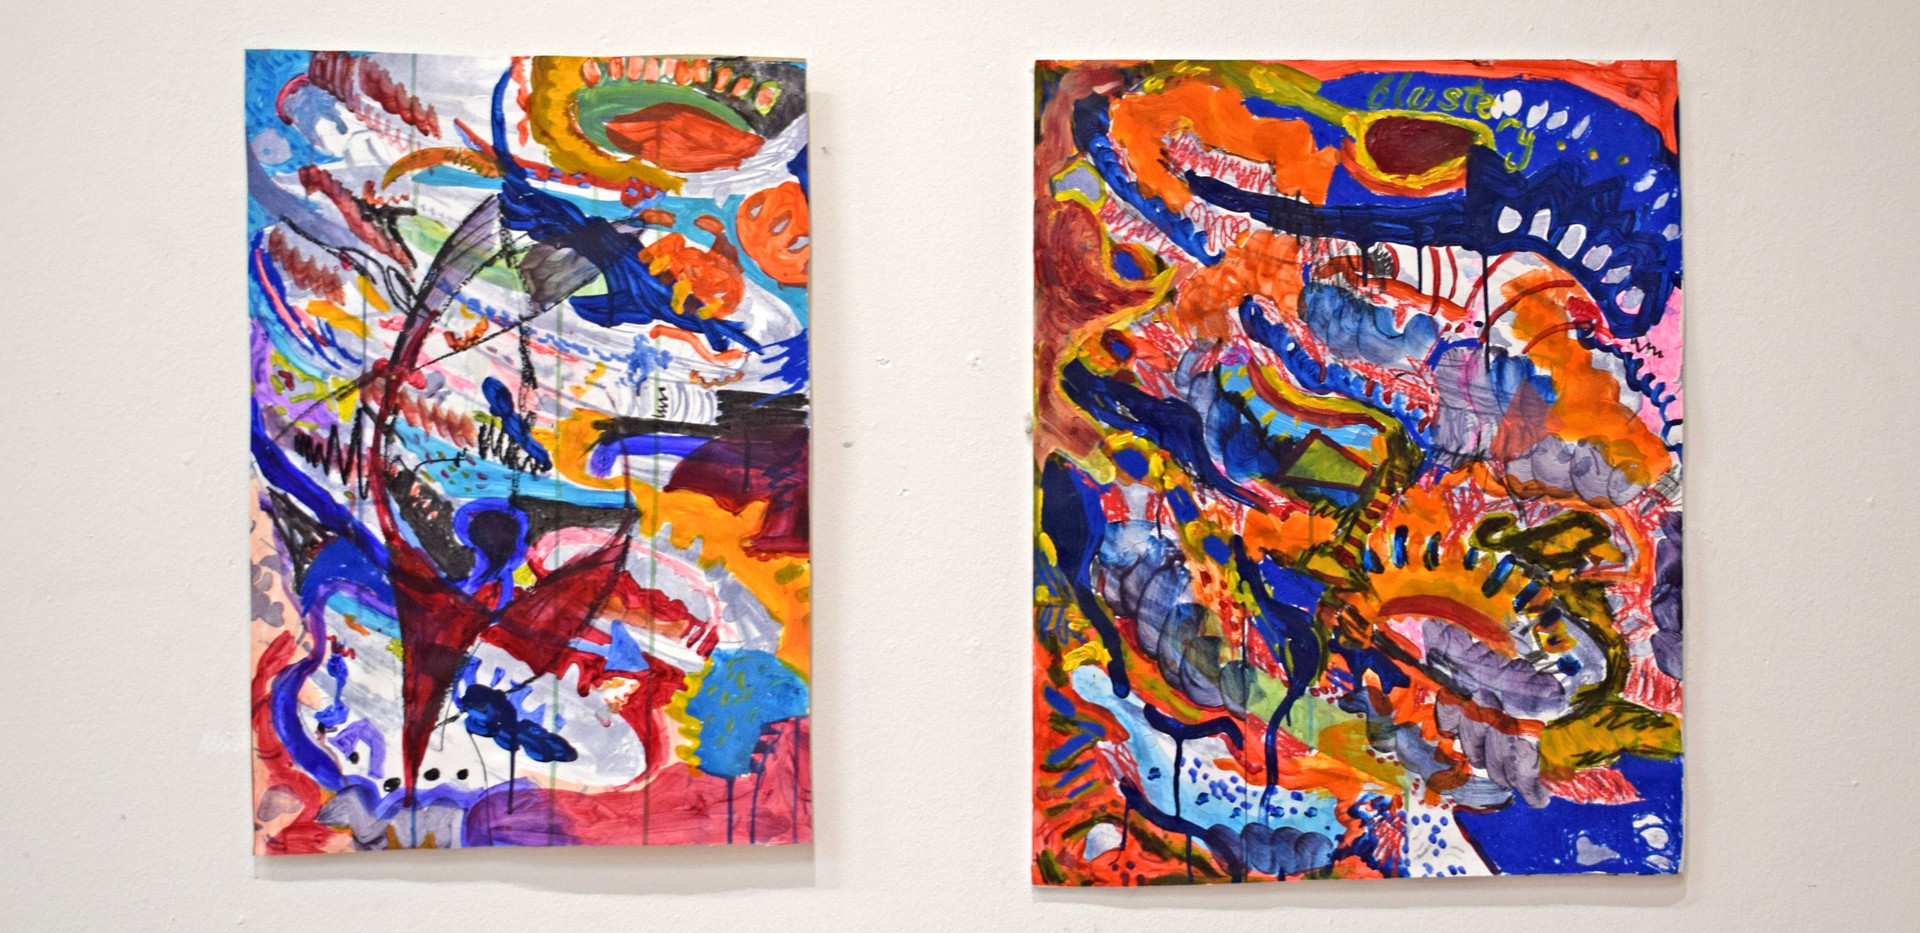 Contained Rhythm VII and Contained Rhythm VI. Private collection.